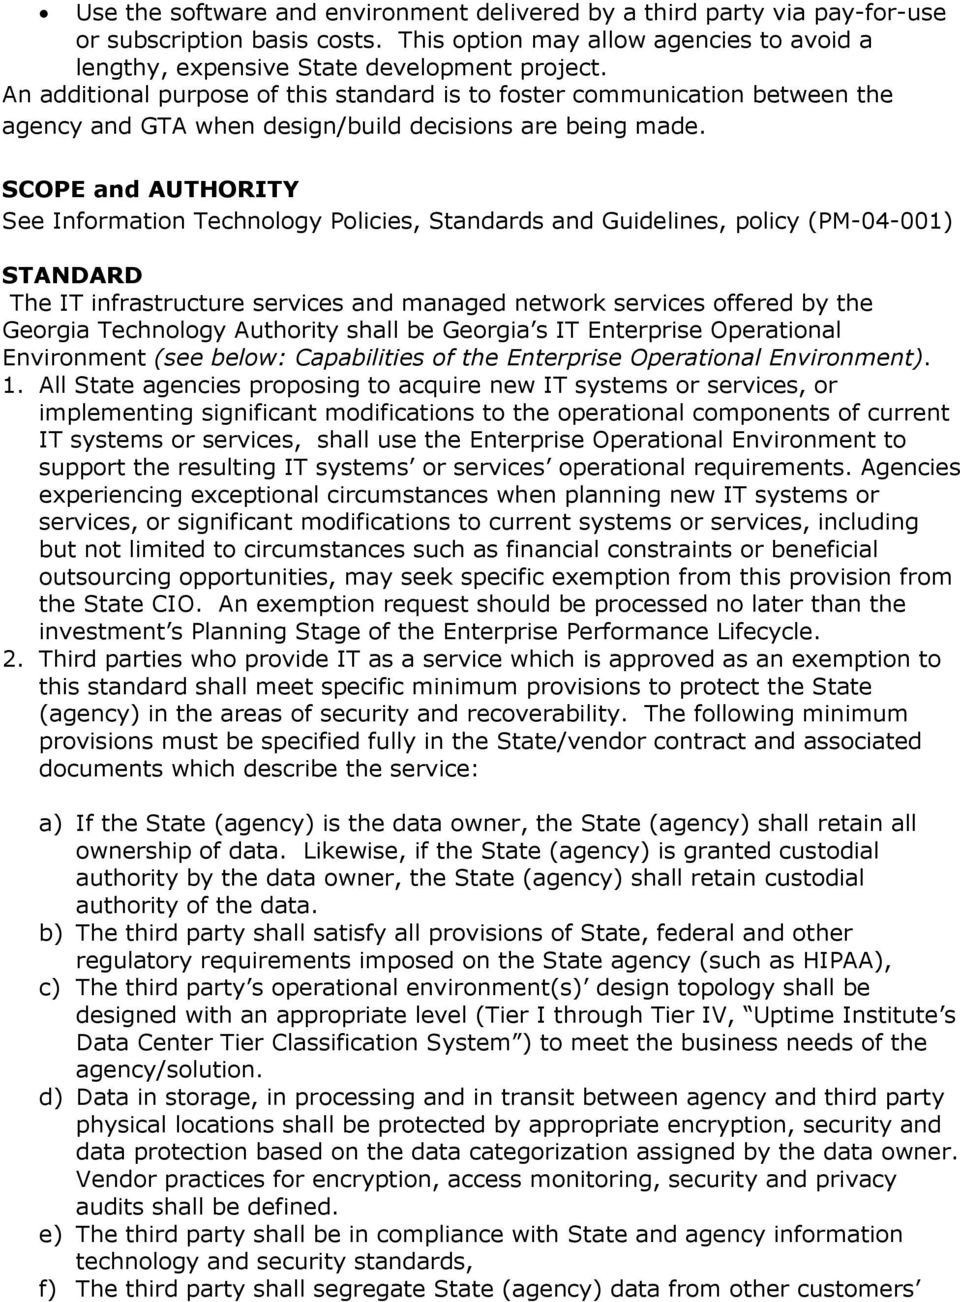 SCOPE and AUTHORITY See Information Technology Policies, Standards and Guidelines, policy (PM-04-001) STANDARD The IT infrastructure services and managed network services offered by the Georgia